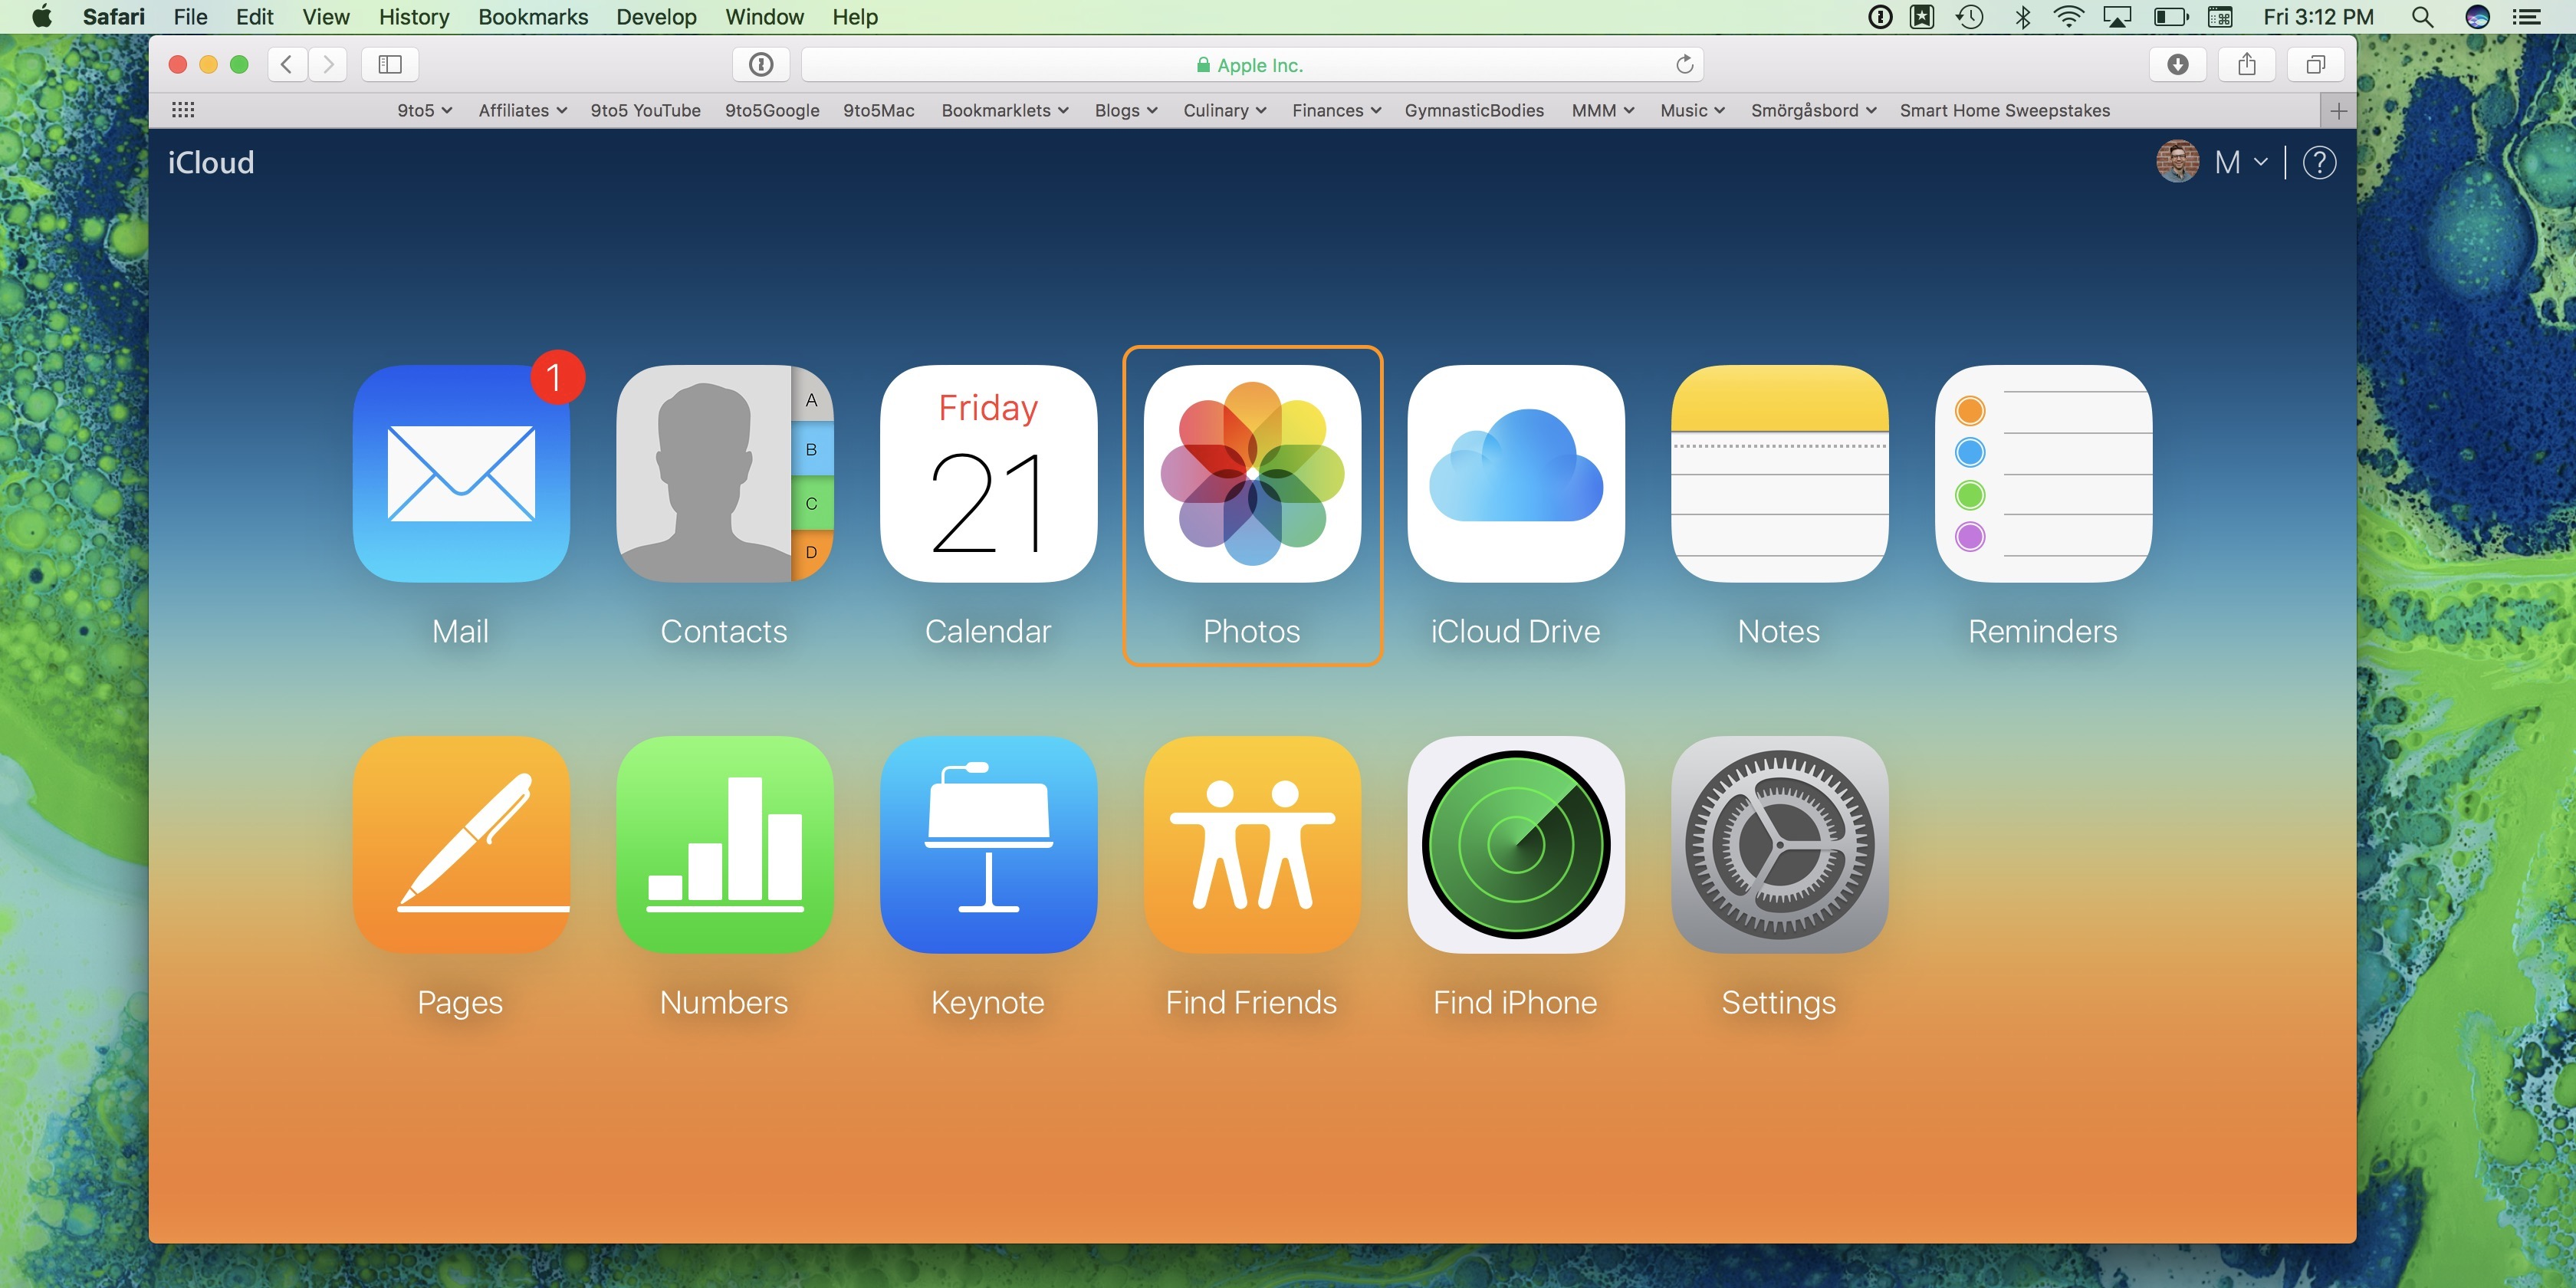 Image showing iCloud.com after logging in with Apple ID and password